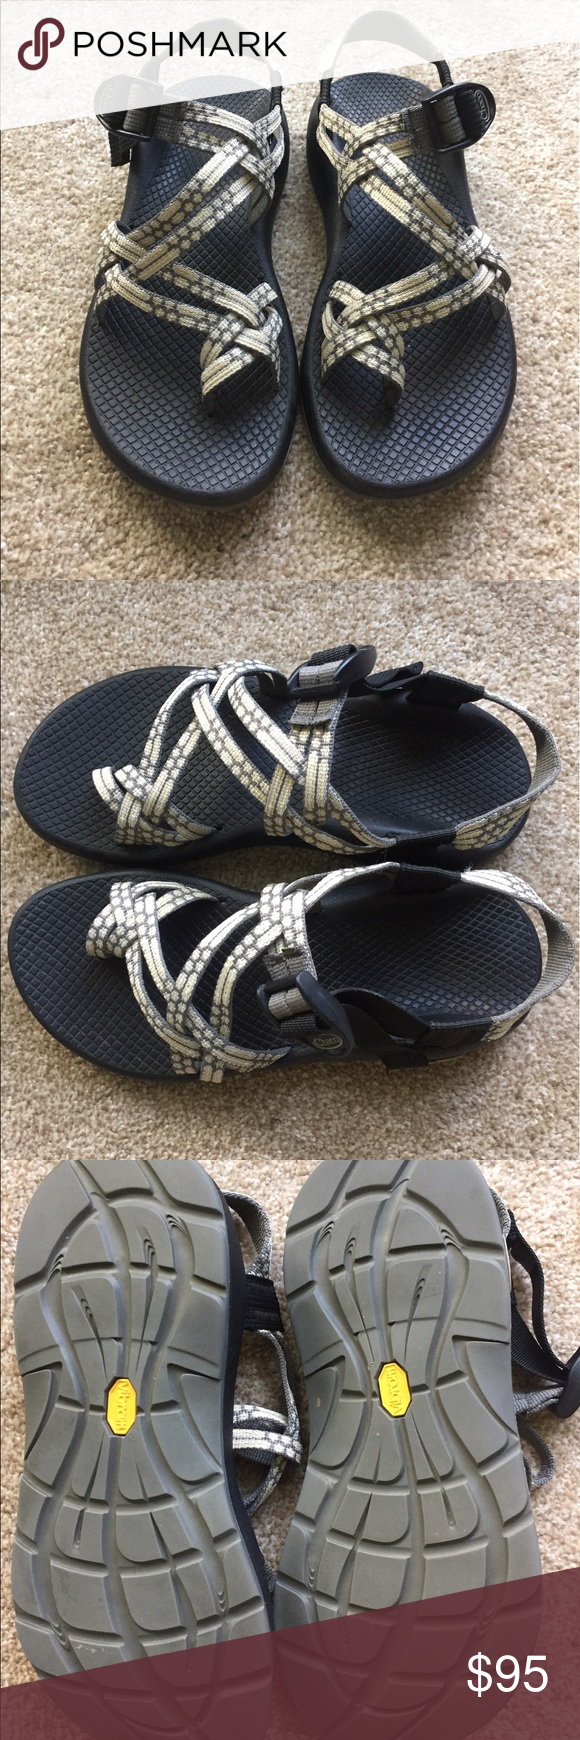 010a35bdac6b Chaco Sandals 7 double toe strap moonbeam Like new condition! I m open to  all offers ! Chaco Shoes Sandals